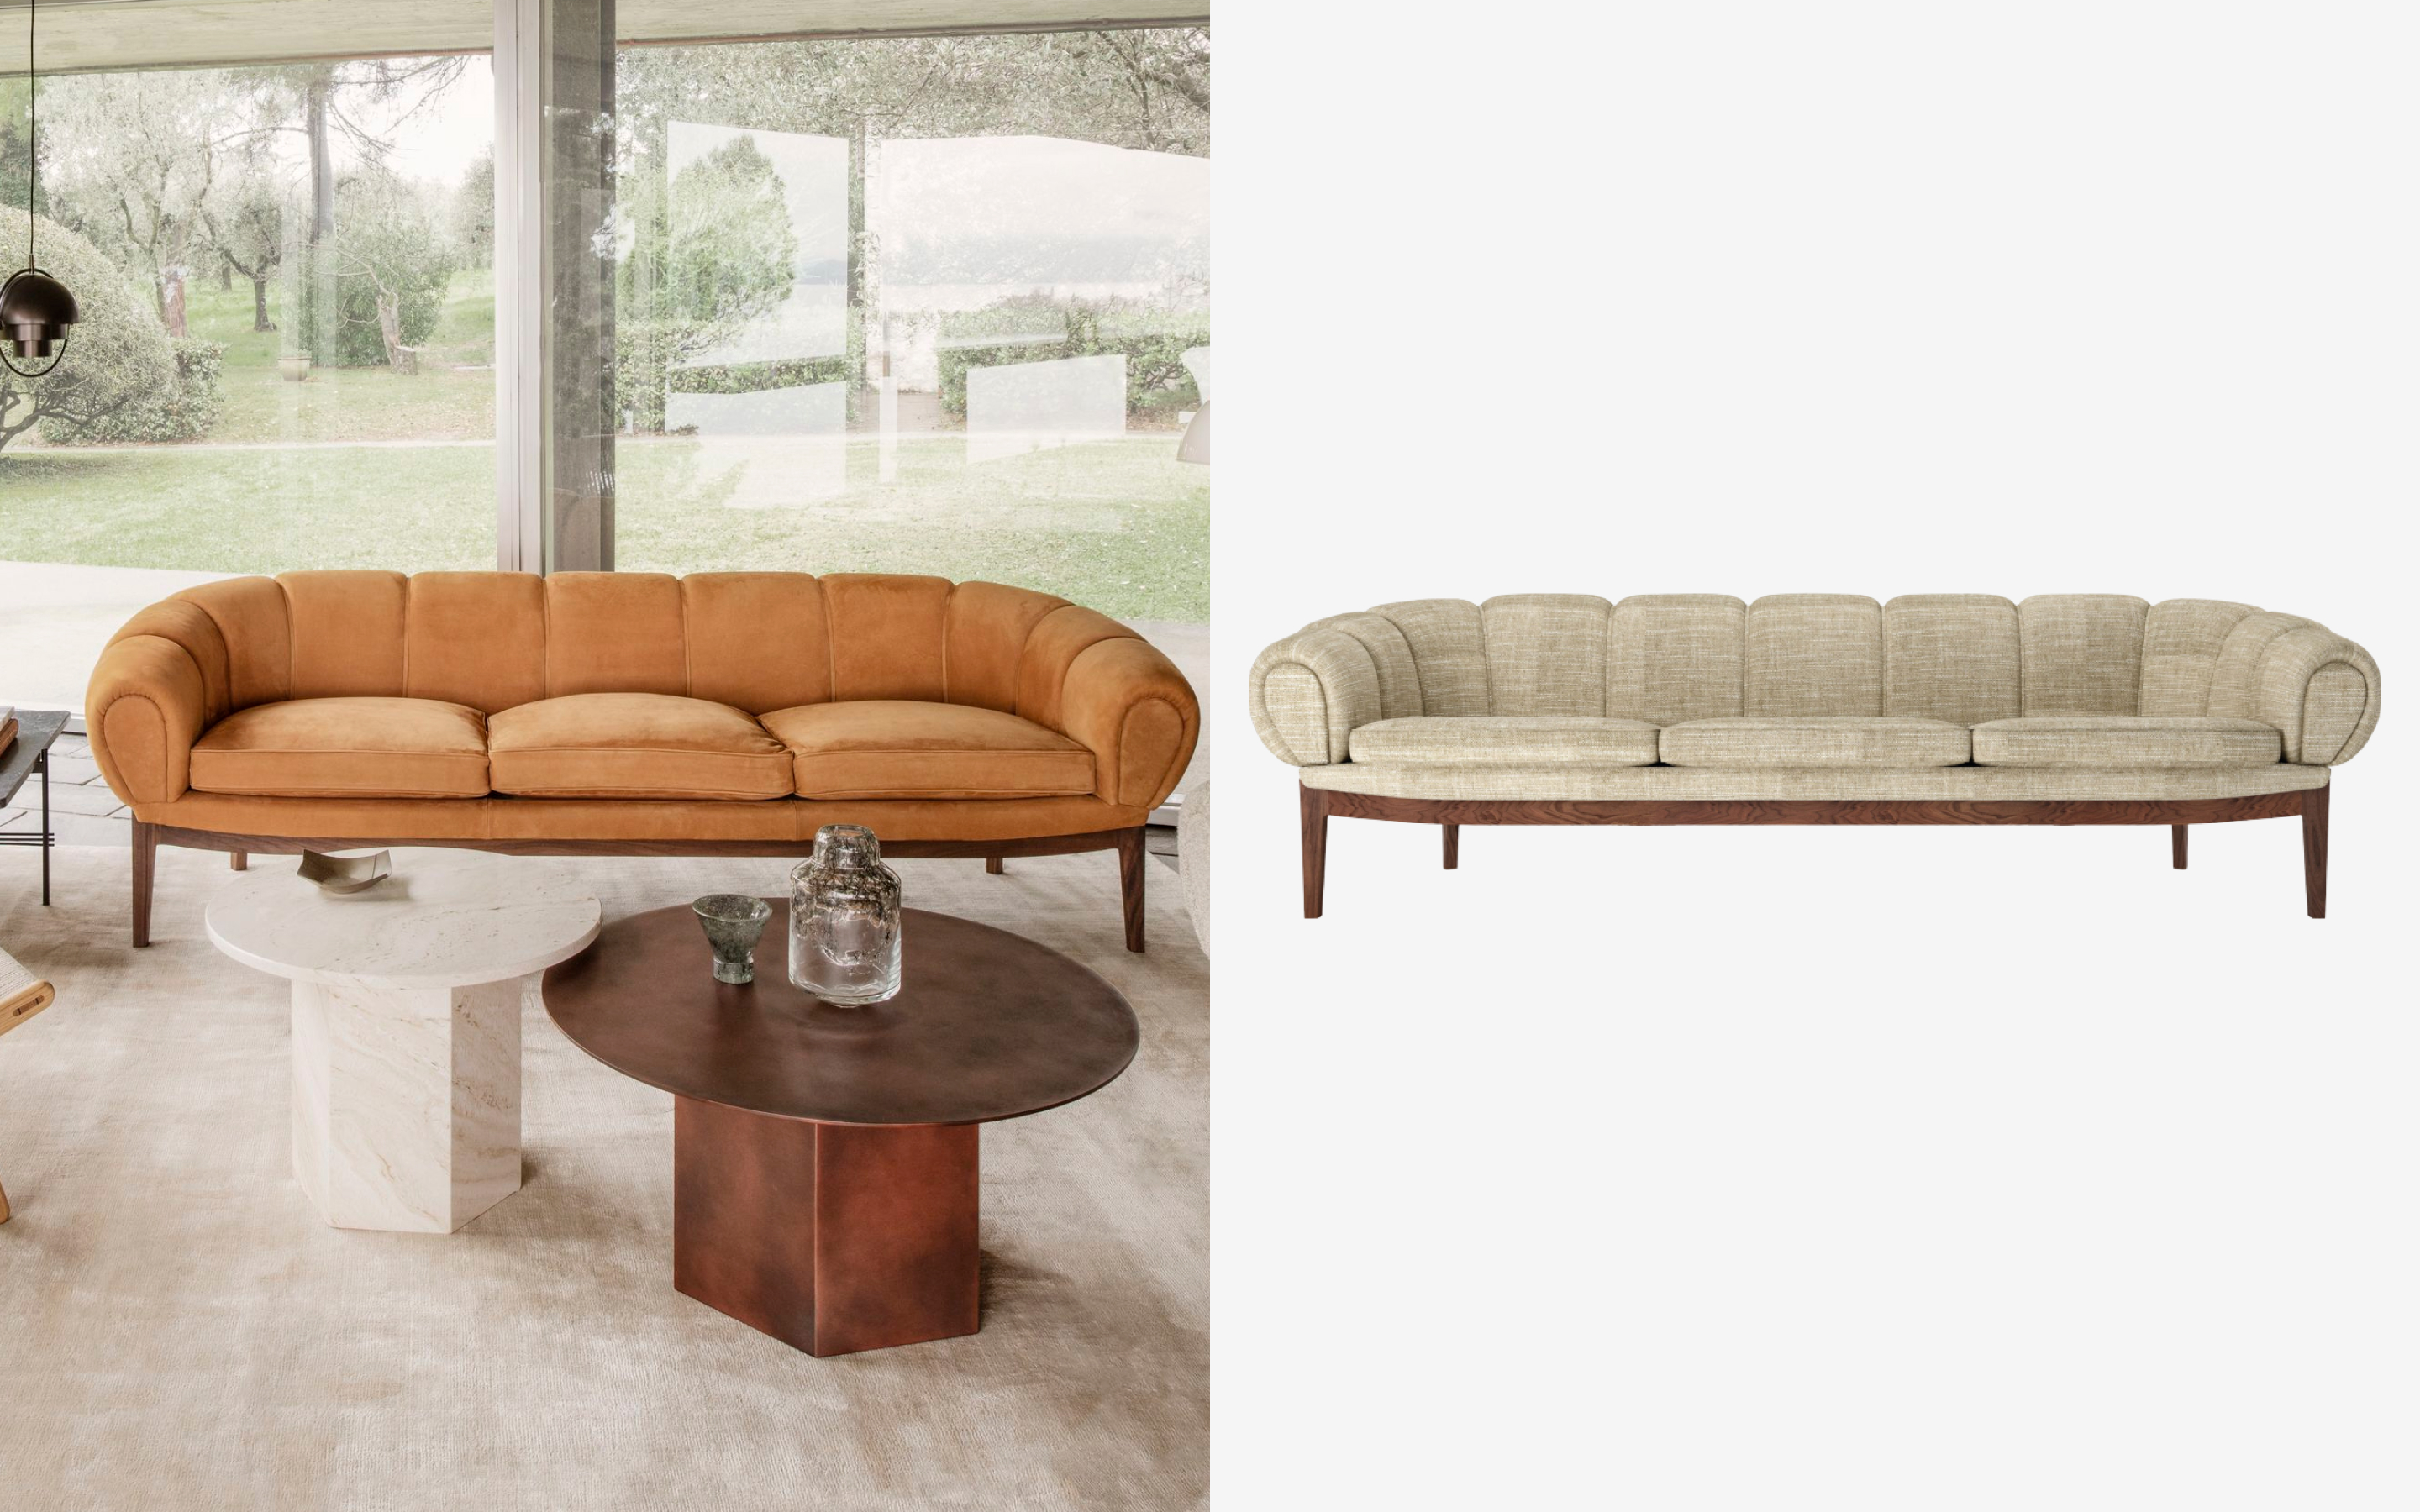 Croissant-shaped leather sofa by Gubi